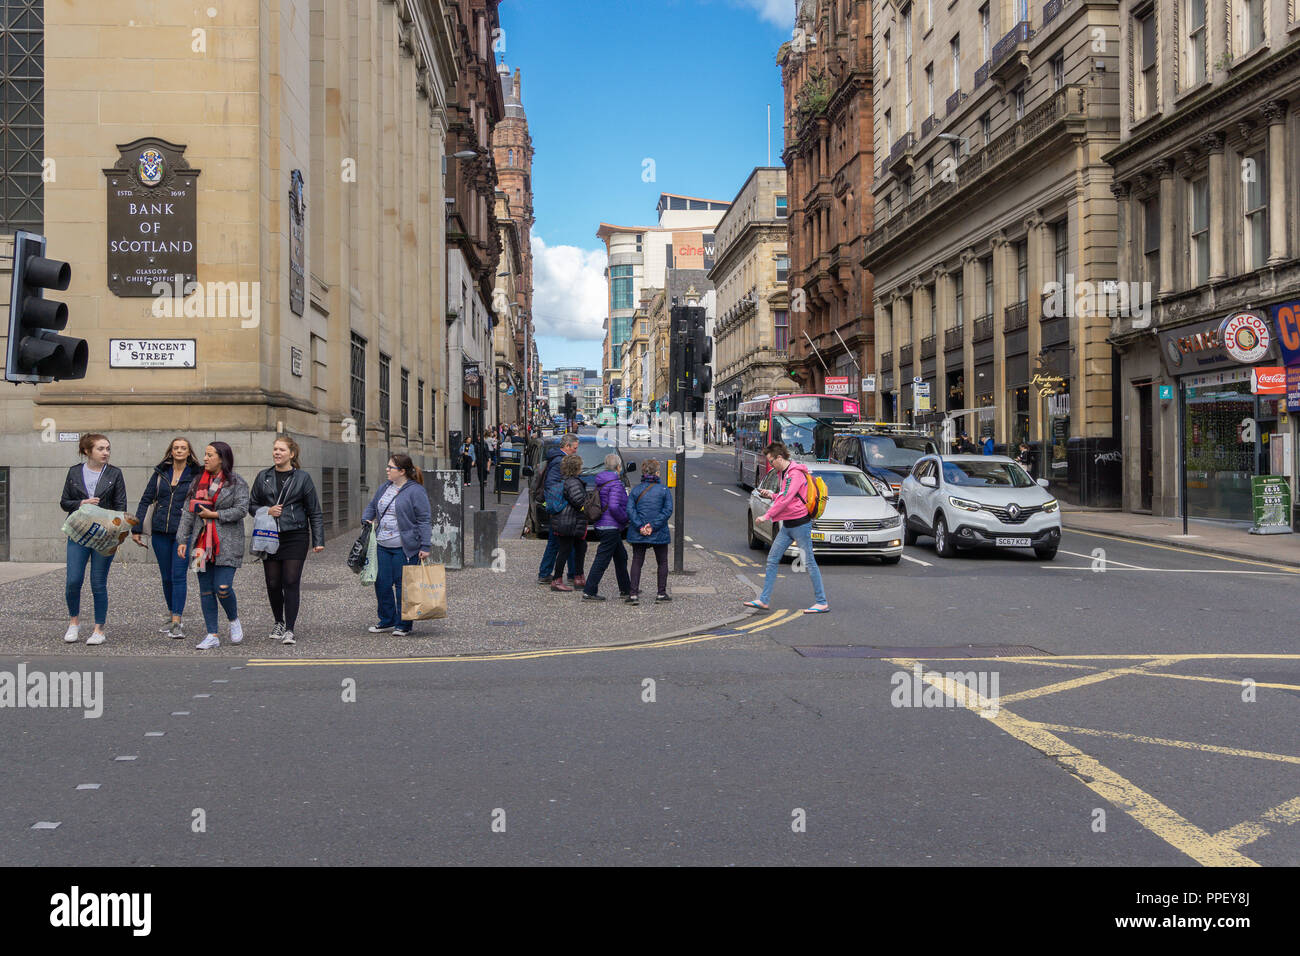 Glasgow City, Scotland, UK - September 22, 2018: Looking up Renfield Street Glasgow with pedestrians and traffic. - Stock Image